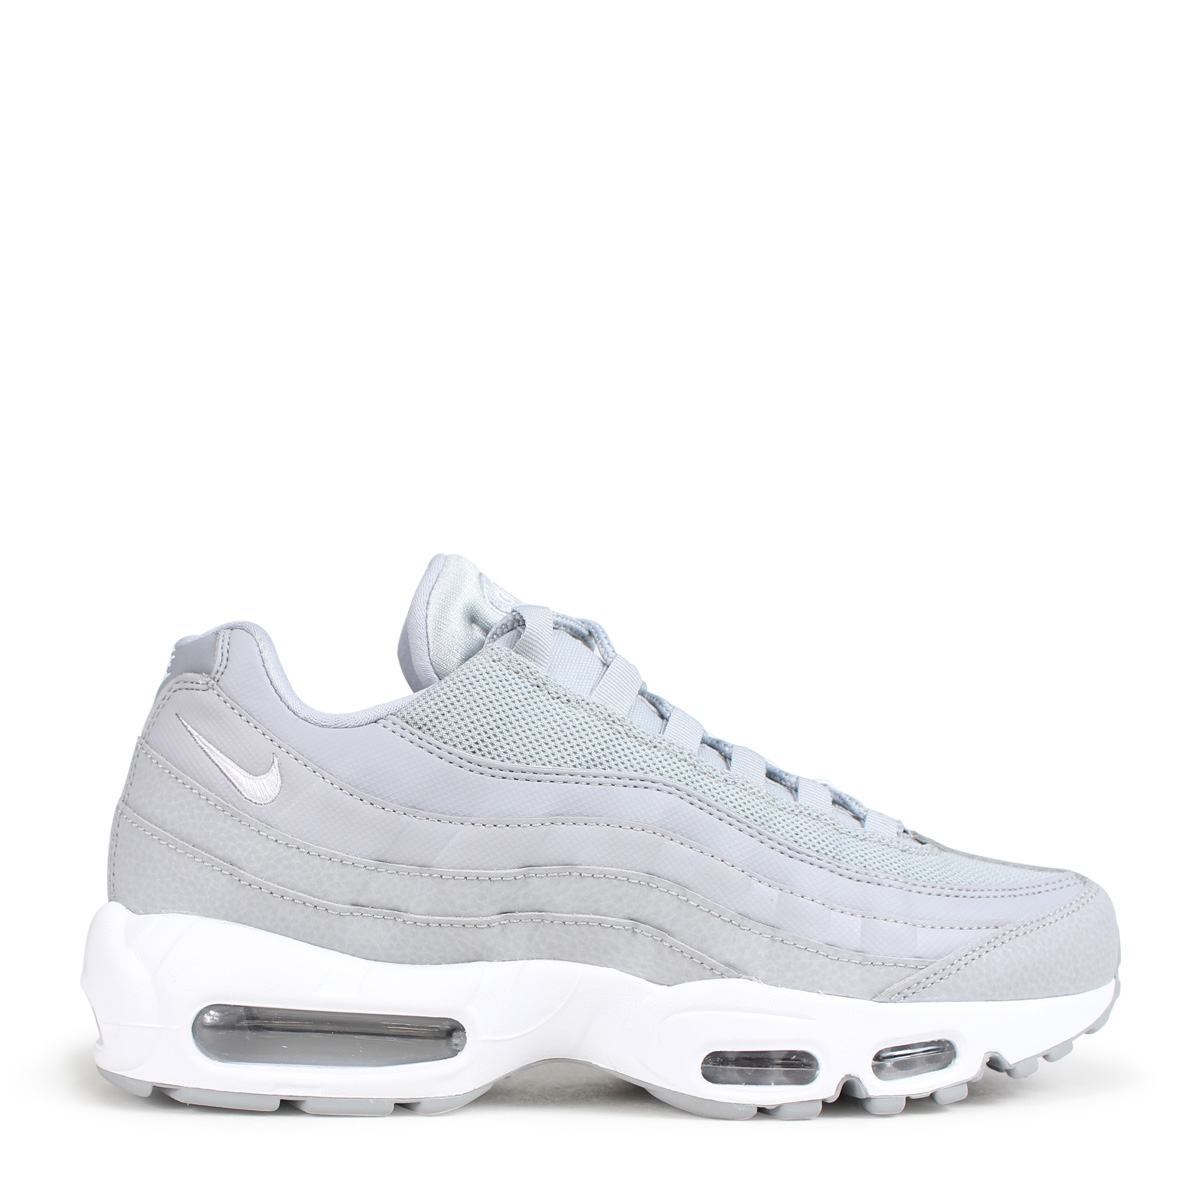 a6d44c45ae ... NIKE AIR MAX 95 ESSENTIAL Kie Ney AMAX 95 essential sneakers men 749,766 -037 gray ...